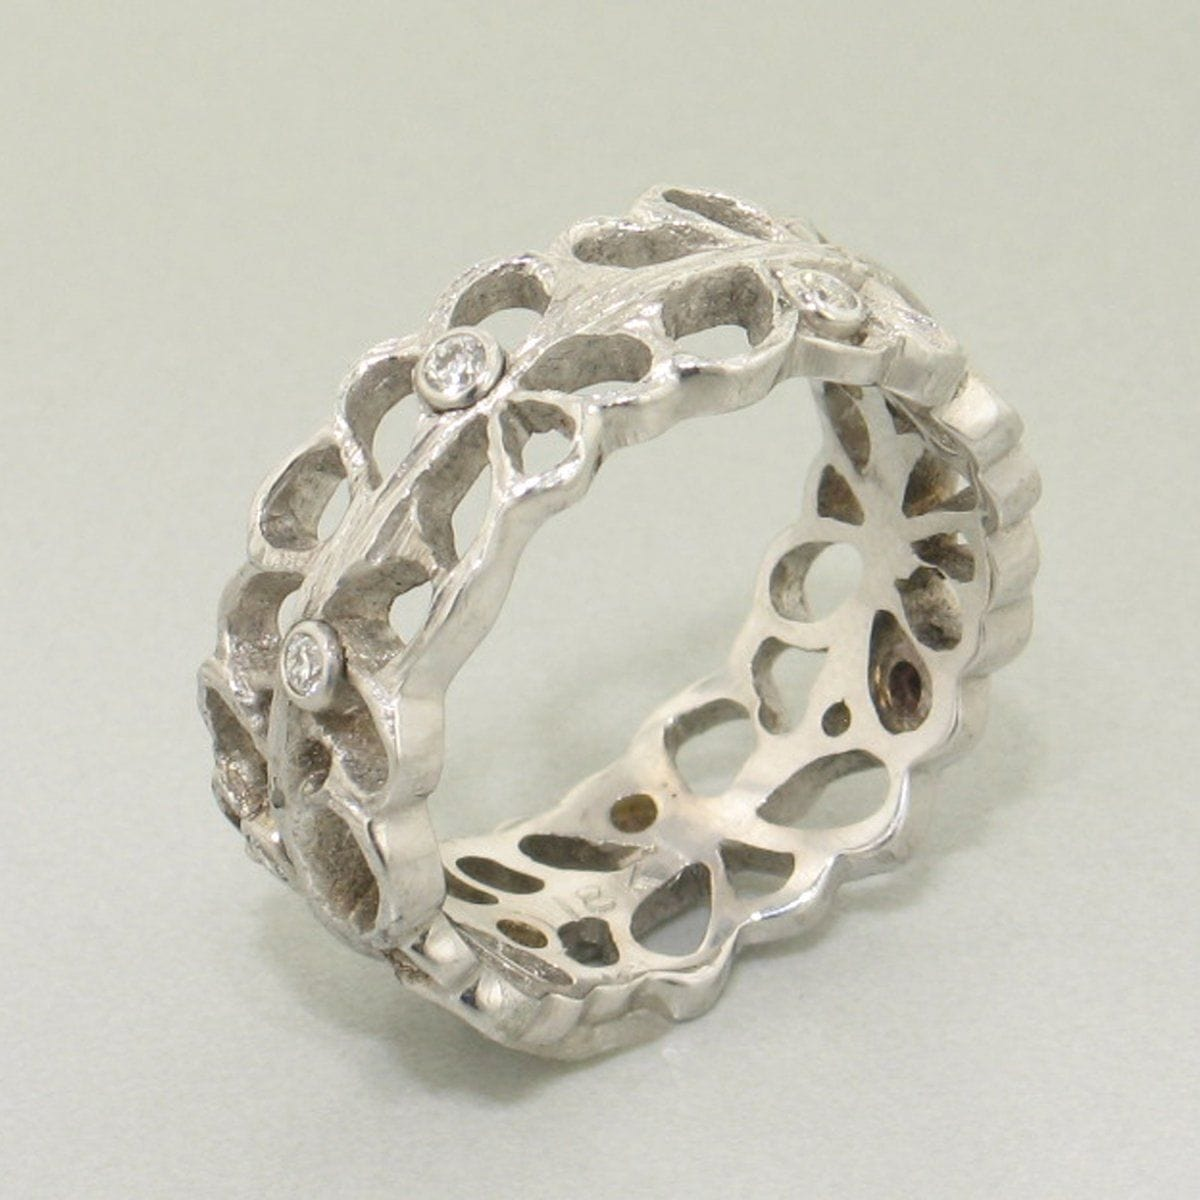 Shadow Diamond & White Gold Ring - 40R1-1-1G-WG-Sarah Graham-Renee Taylor Gallery